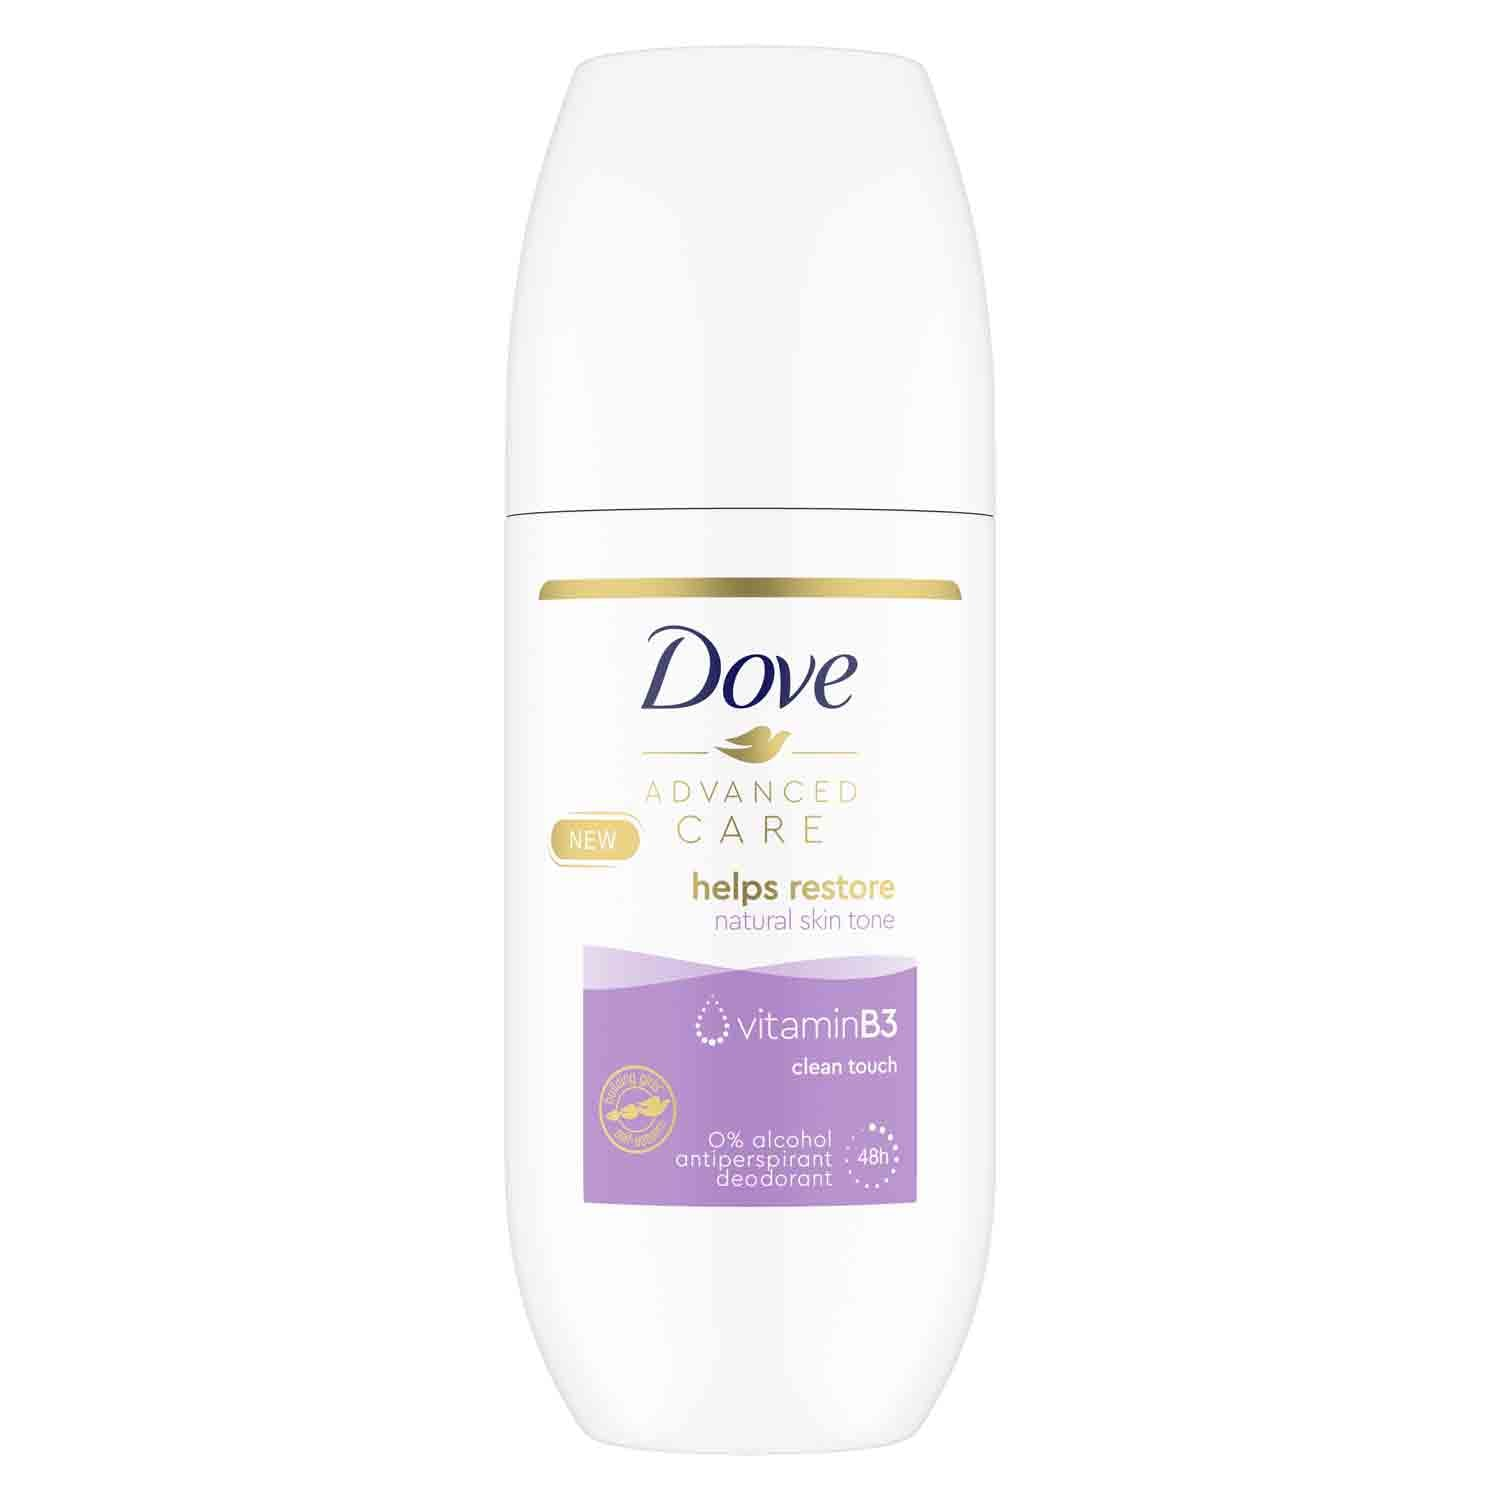 Shop the Dove Advanced Care Clean Touch roll-on deodorant and save £2.04